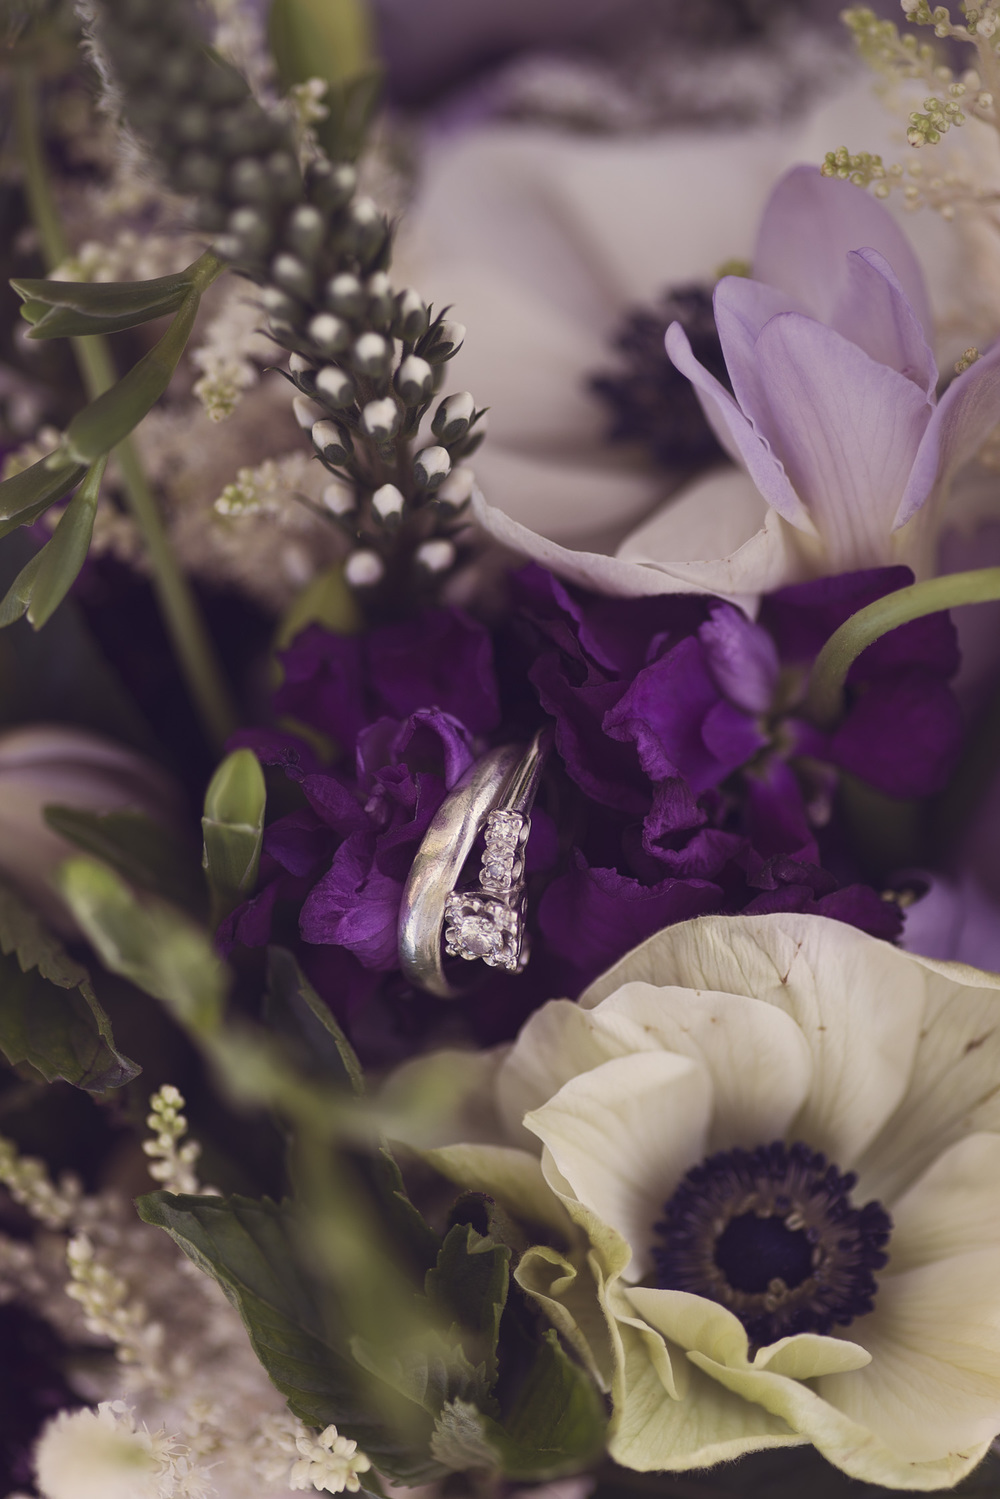 rings wedding bands flowers details colorful closeup